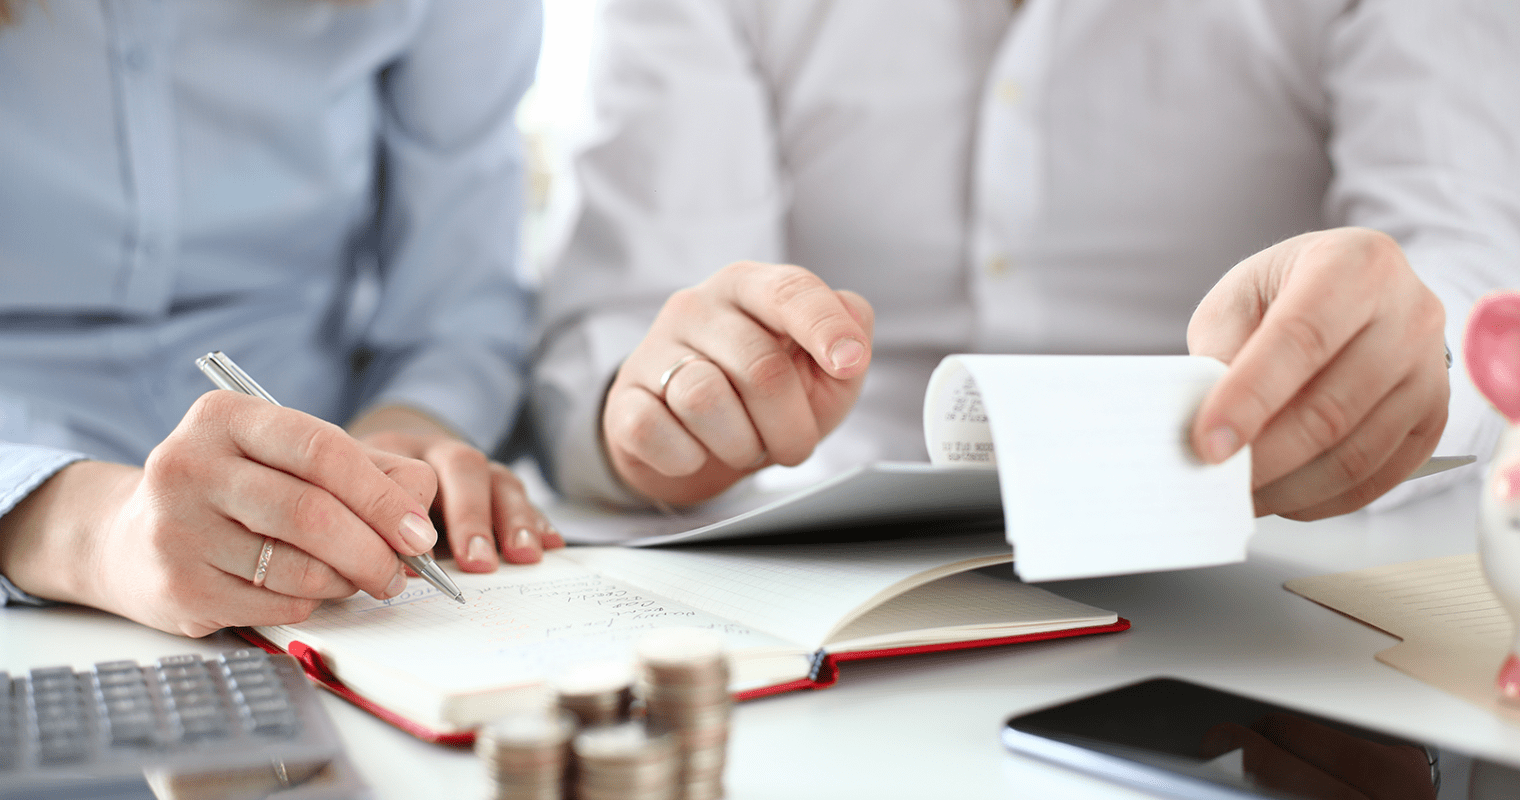 Tracking and Claiming Tax Deductible Business Expenses in Canada